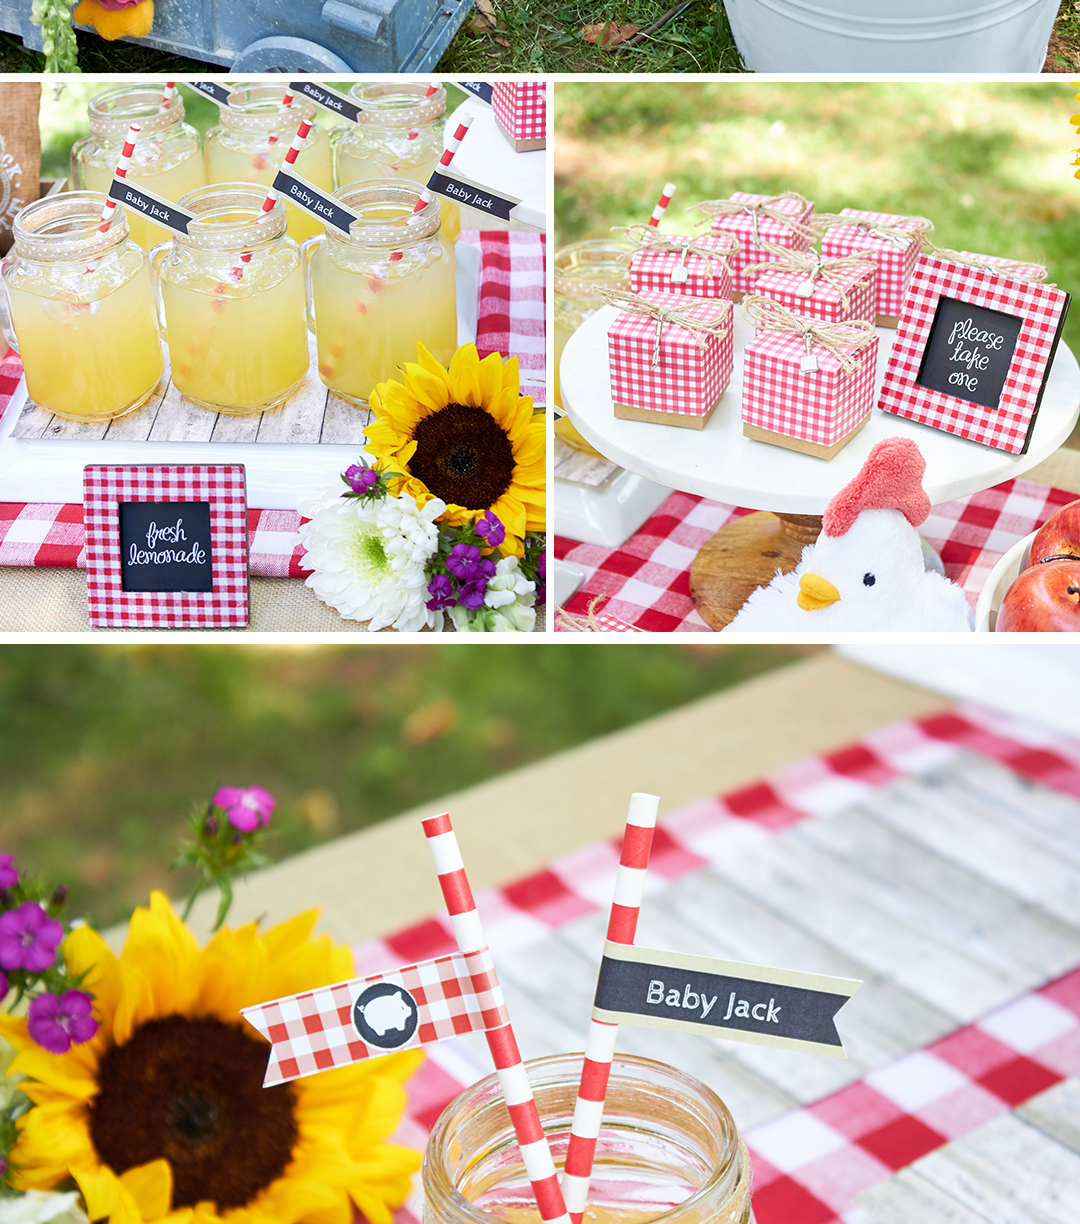 Couples Baby Shower Food Ideas: Baby Shower Bbq PNG Transparent Baby Shower Bbq.PNG Images